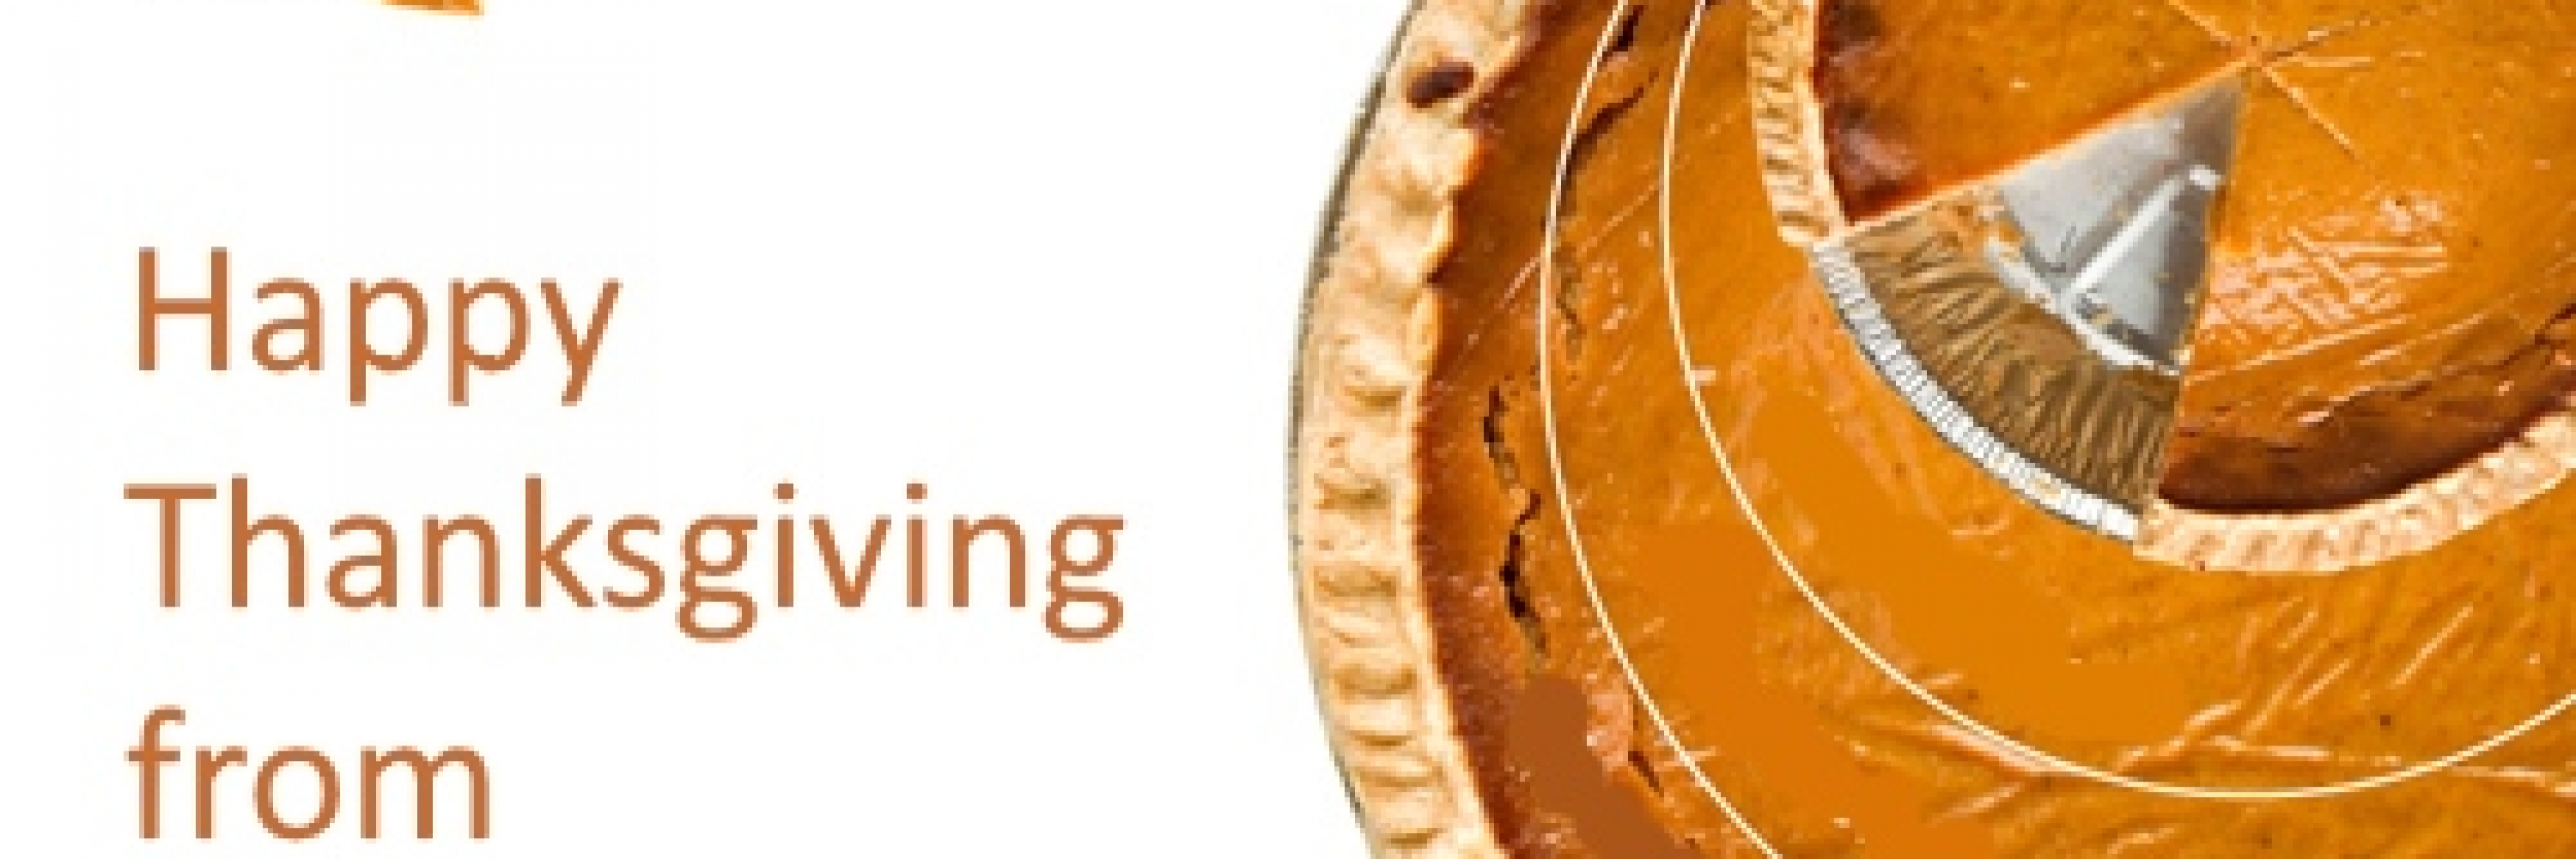 Thanks for helping us expand the pie - Happy Thanksgiving from Advoz!